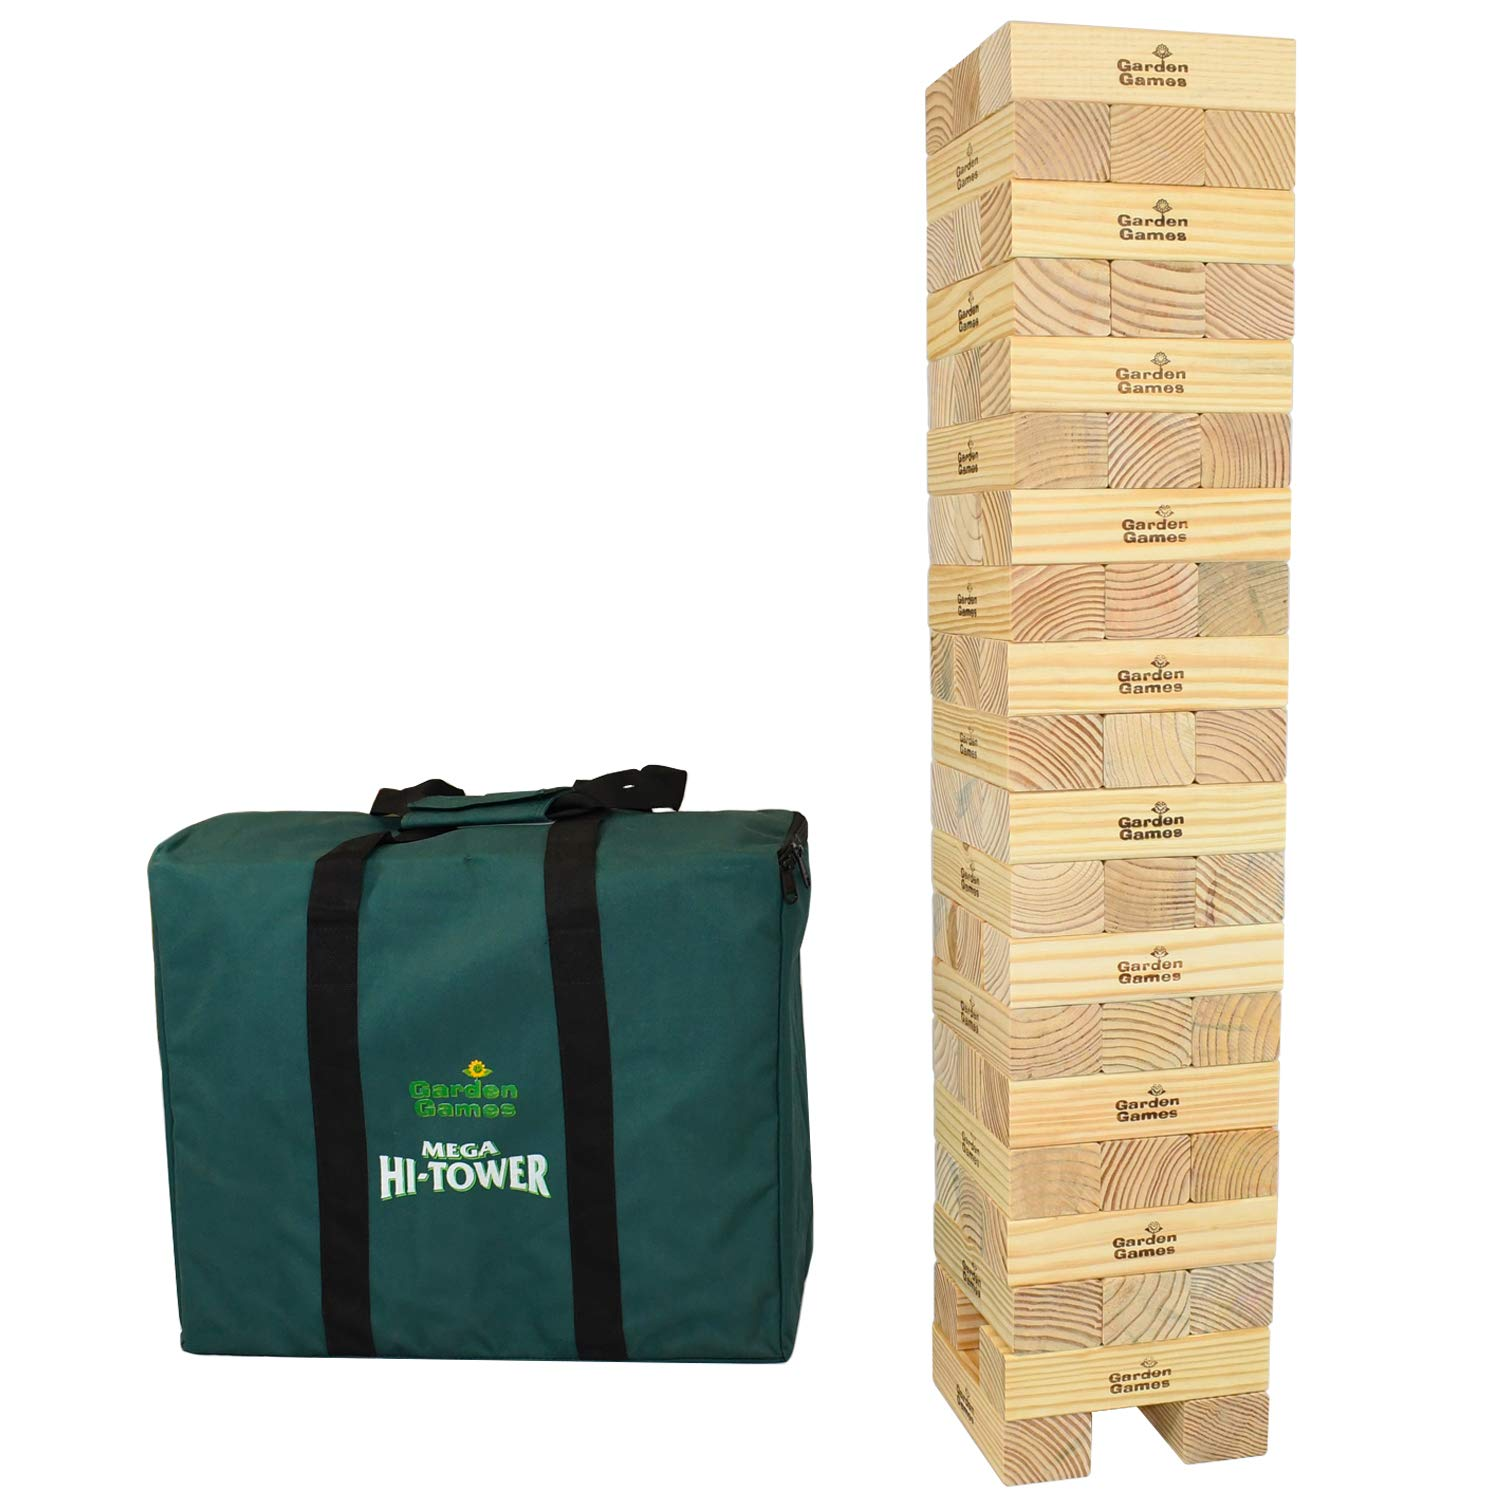 Garden Games Mega Hi-Tower in a Bag – Giant 0.9 Metres Builds Up To A  Maximum 2.3 Metres Wooden Tower Block Game